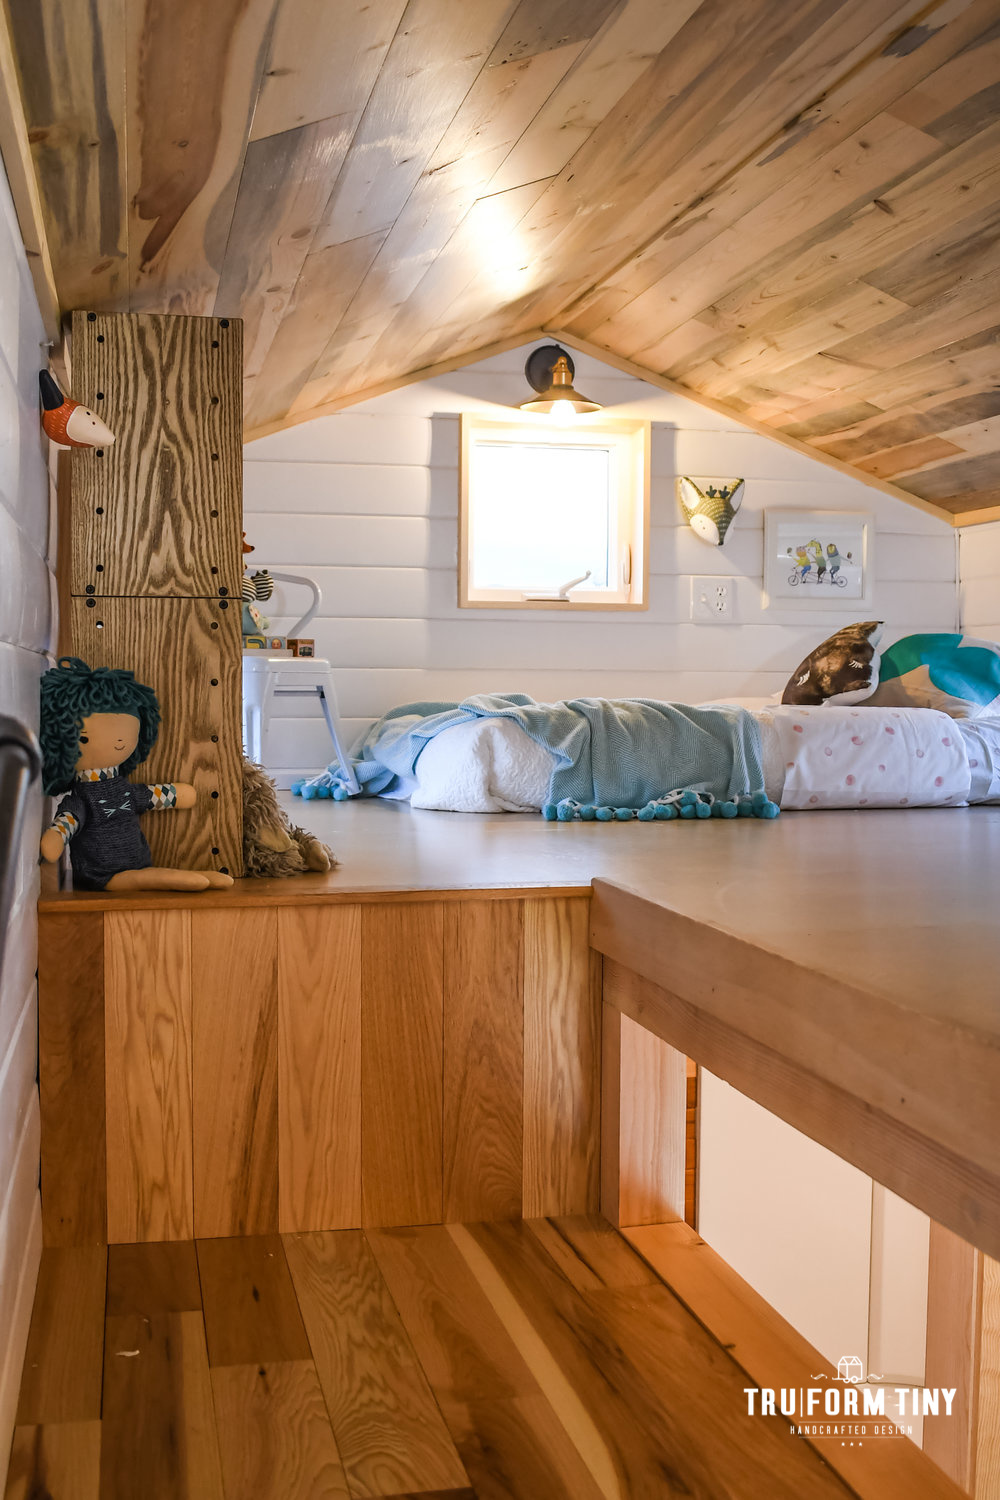 Click to follow Tiny House Town on: Facebook | Instagram | Pinterest